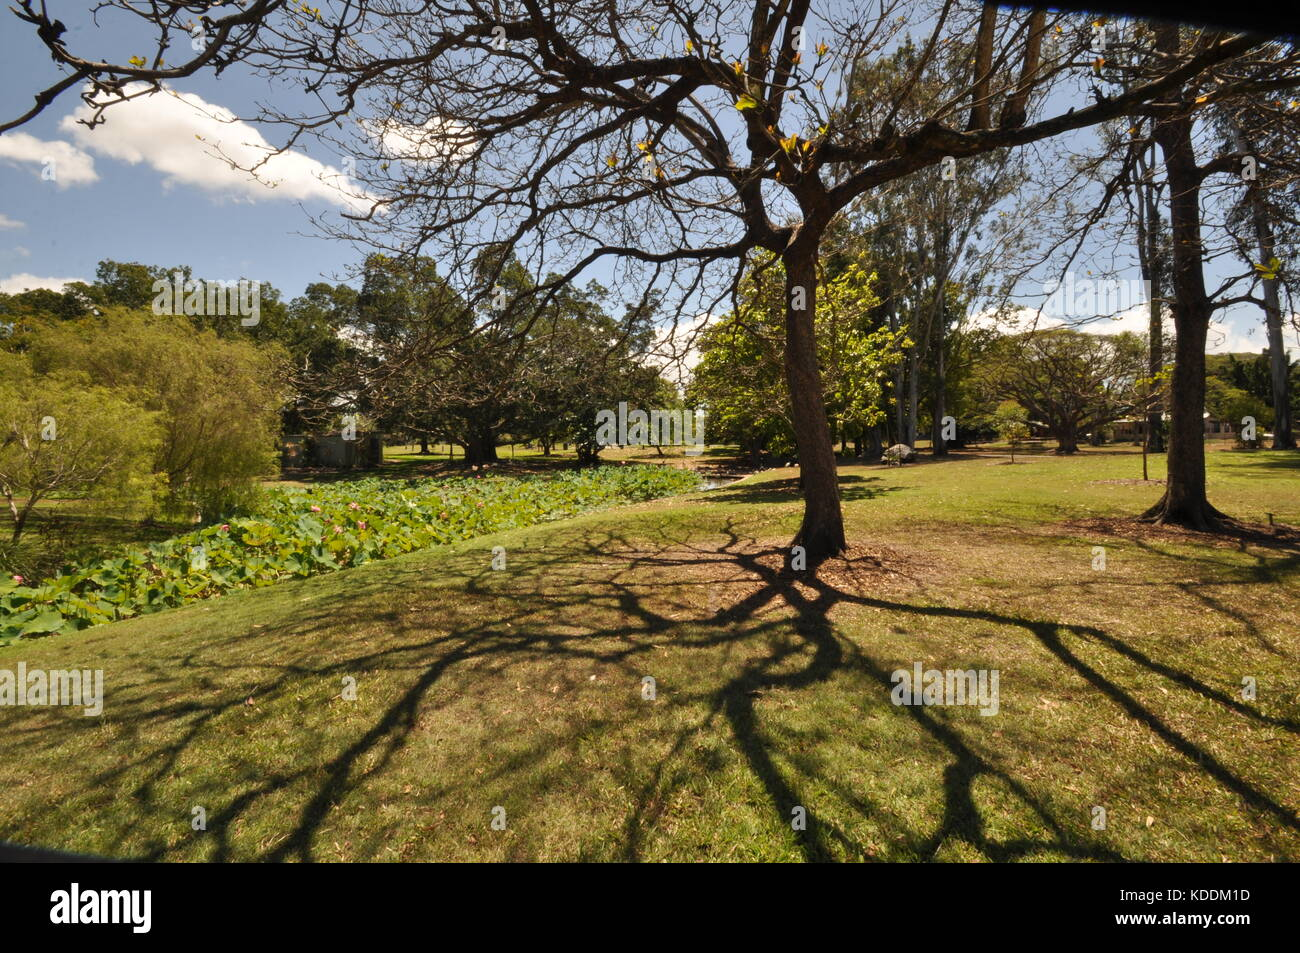 Anderson Park Botanical Gardens, Townsville, Queensland, Australia - Stock Image